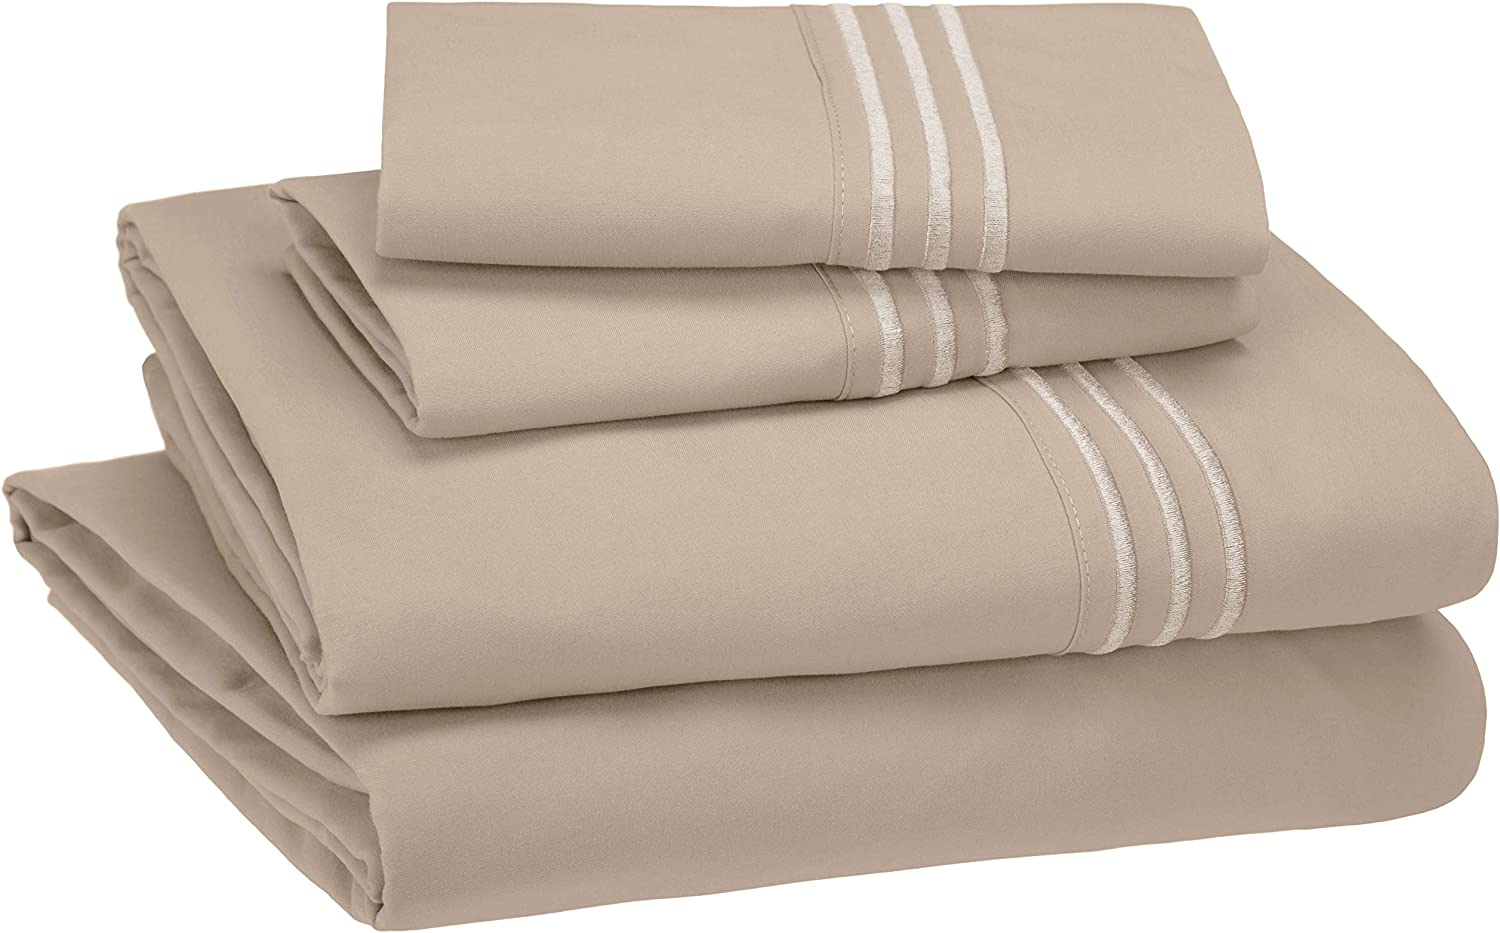 Amazon Basics Easy Wash Embroidered Hotel Stitch Brown Bed Sheet